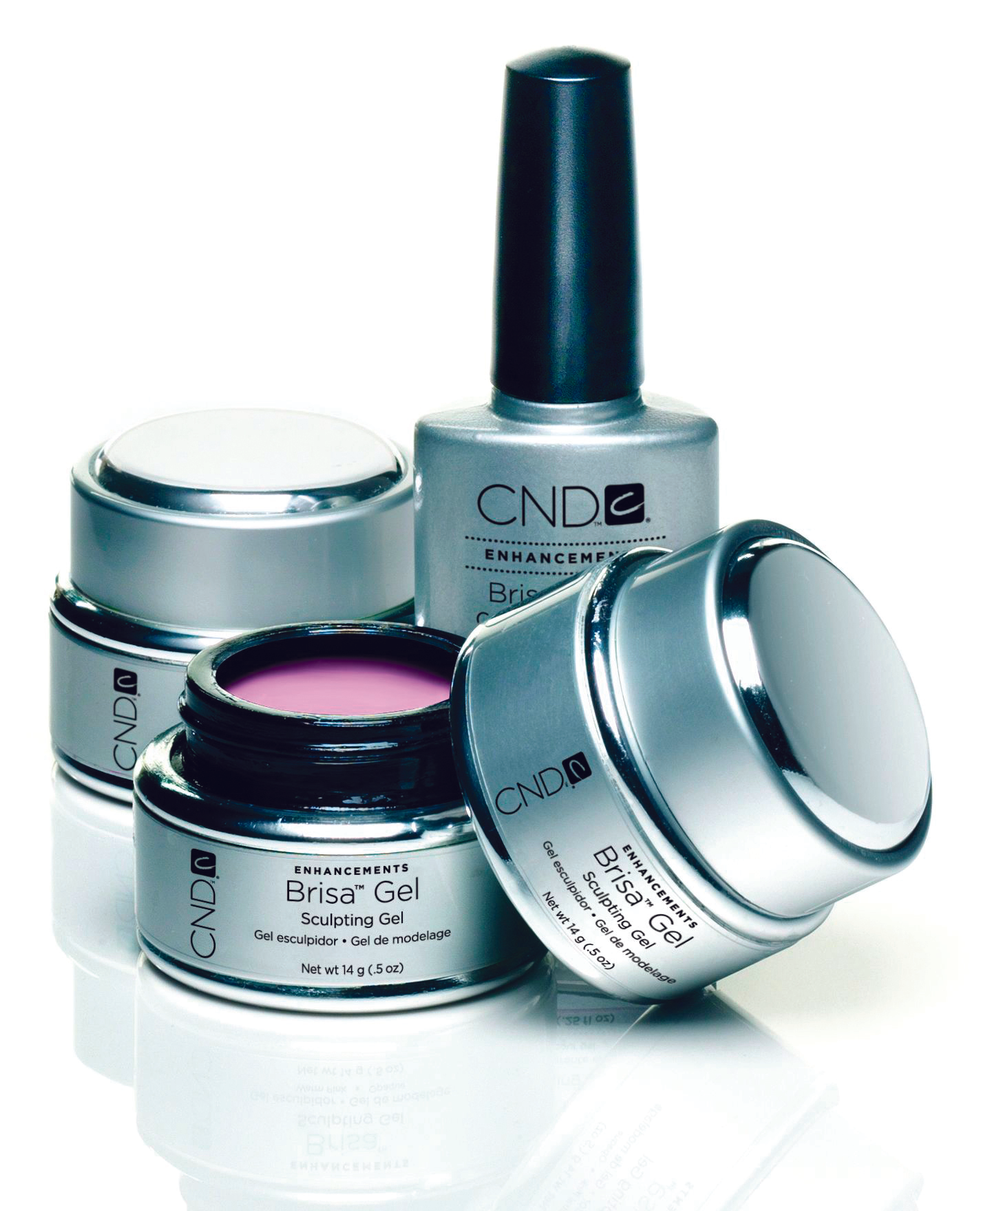 <p>FAVORITE GEL (TRADITIONAL) SYSTEM</p> <p>1. <strong>CND:</strong> Brisa Gel System</p> <p>2. <strong>Young Nails:</strong> Synergy Gel System</p> <p>3. <strong>OPI Products:</strong> Axxium Gel System</p> <p>4. <strong>NSI:</strong> Balance UV Gel System</p> <p>5. <strong>Hand &amp; Nail Harmony:</strong> Gelish Hard Gel</p>